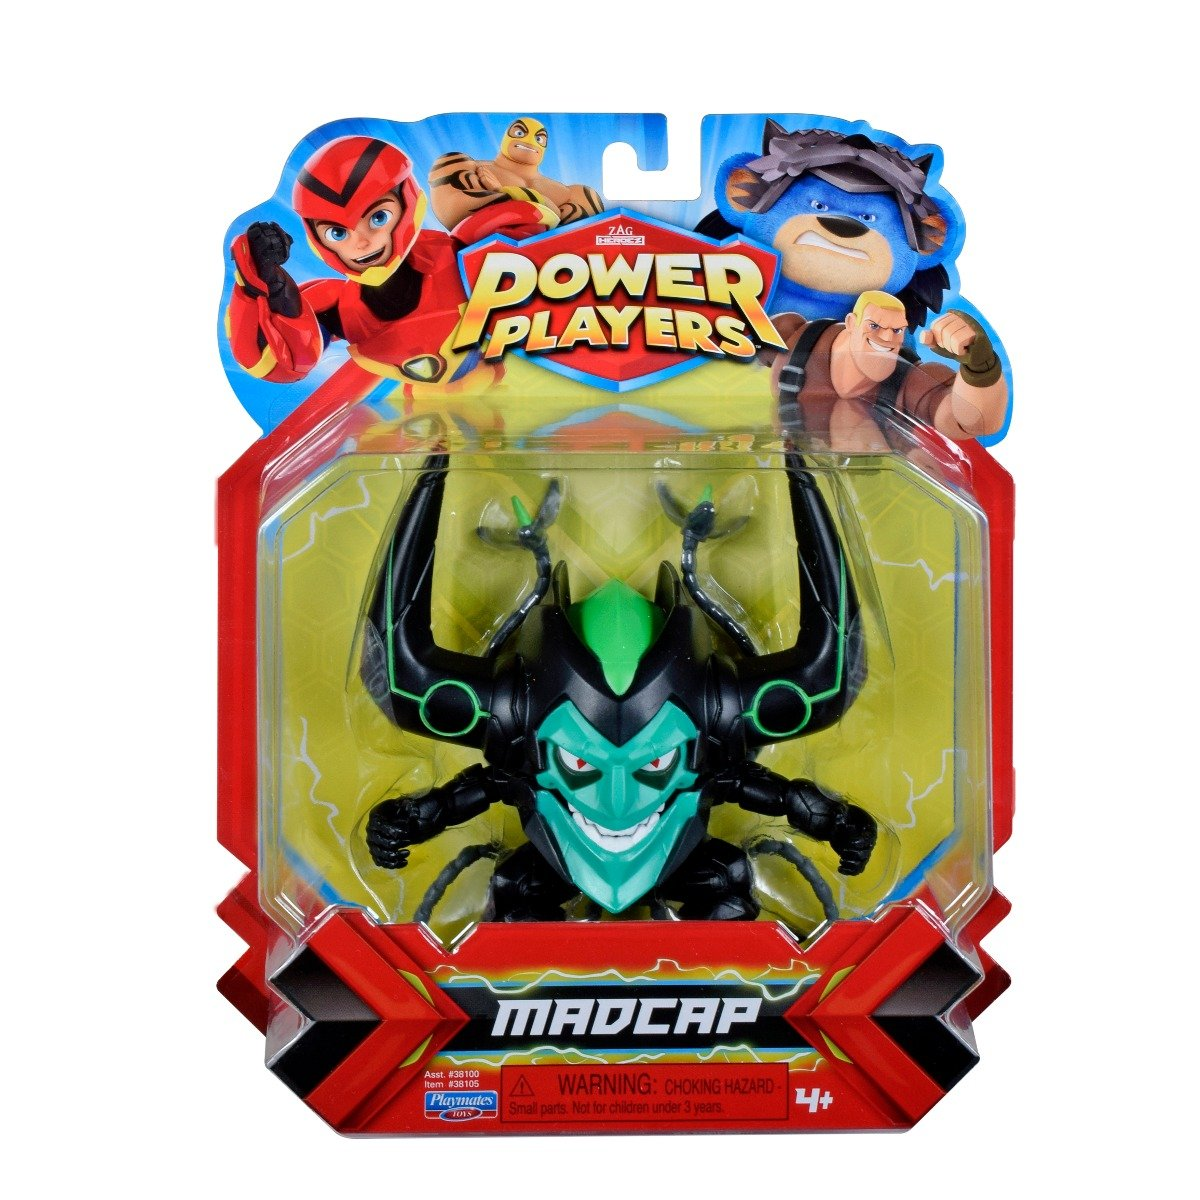 Figurina Power Players, Madcap 38105